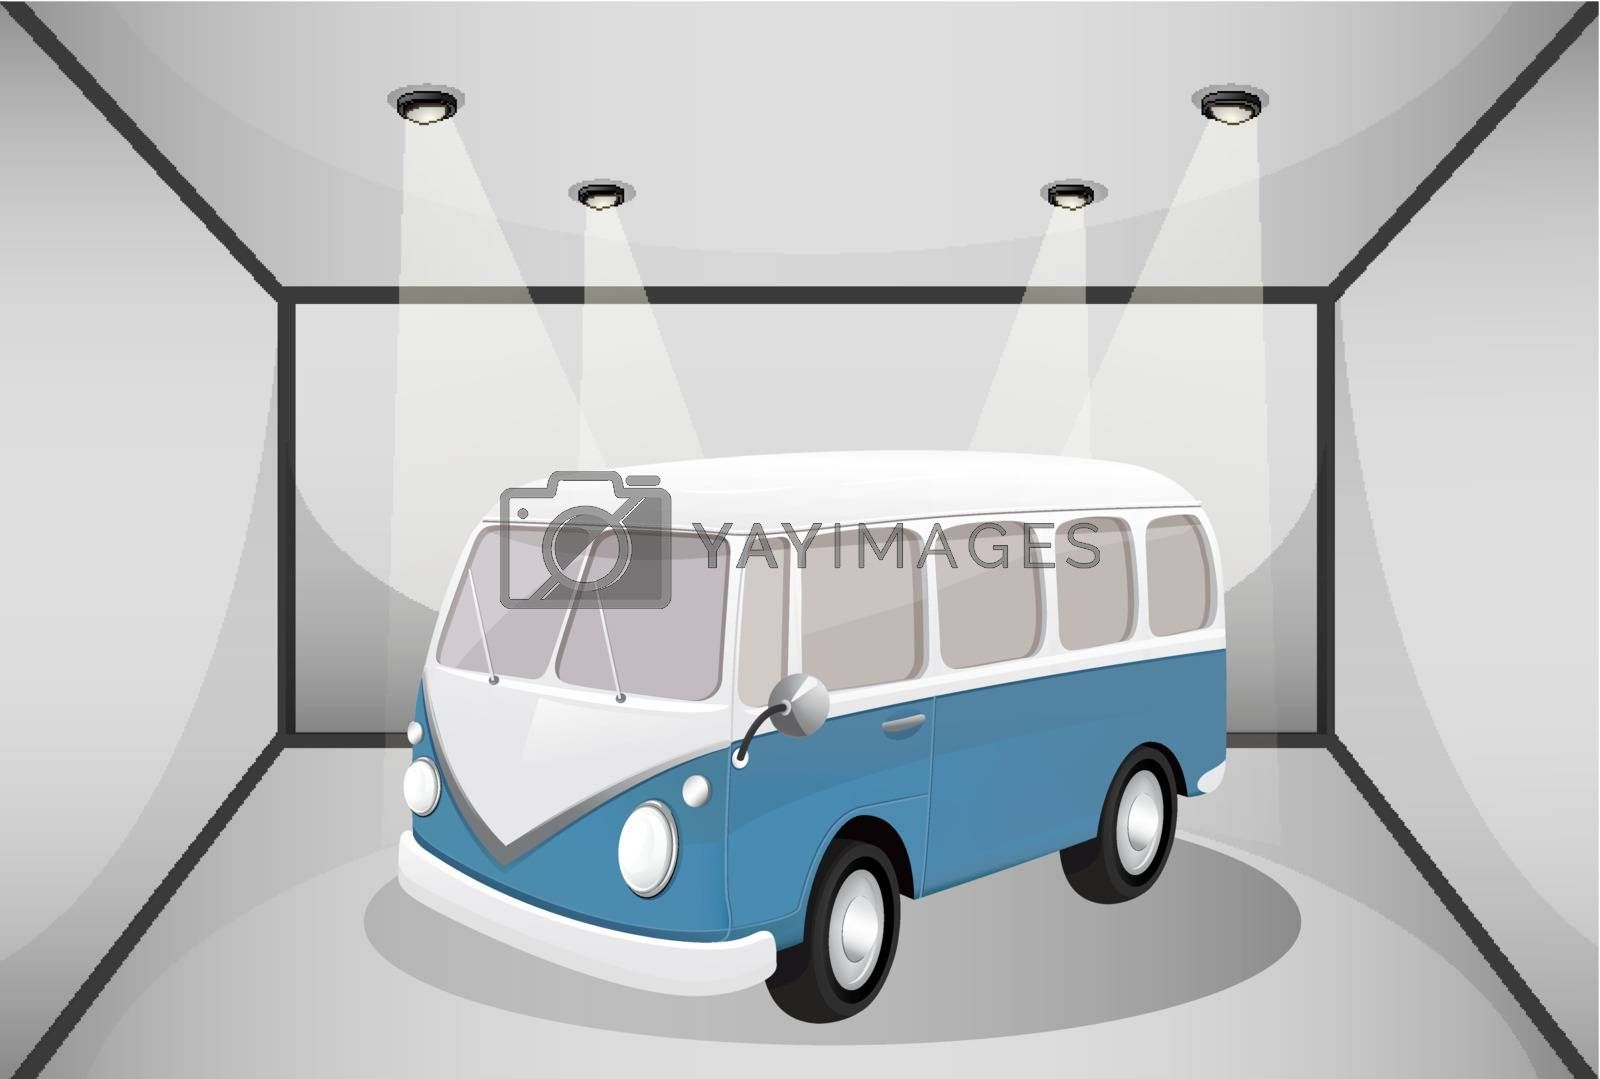 Illustration of a bus in the garage